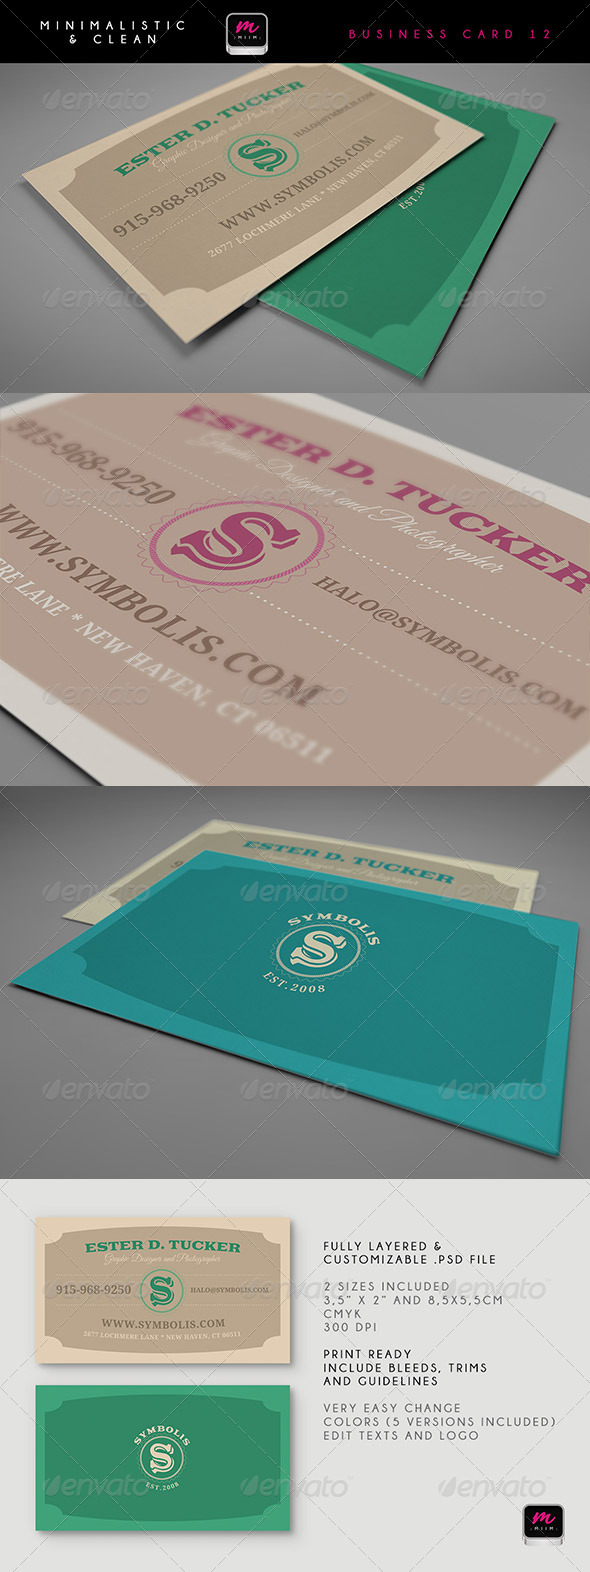 GraphicRiver Clean Business Card Template 12 6068334